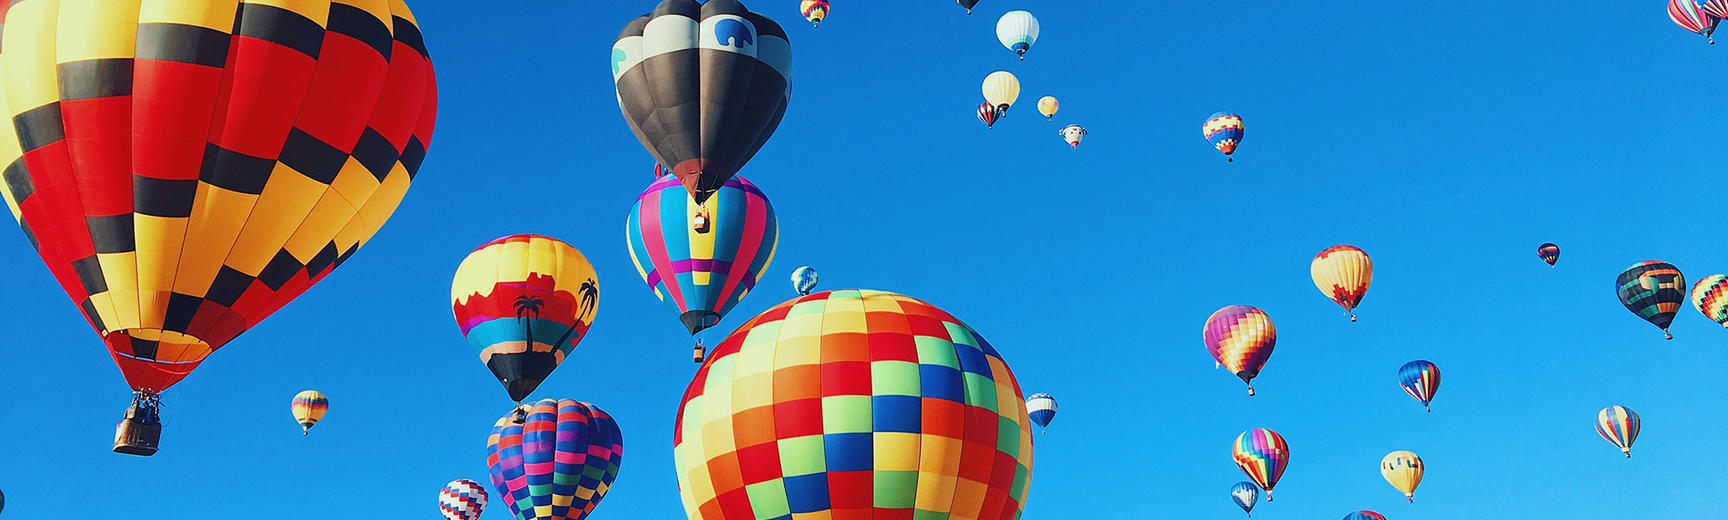 hot air balloons and blue sky